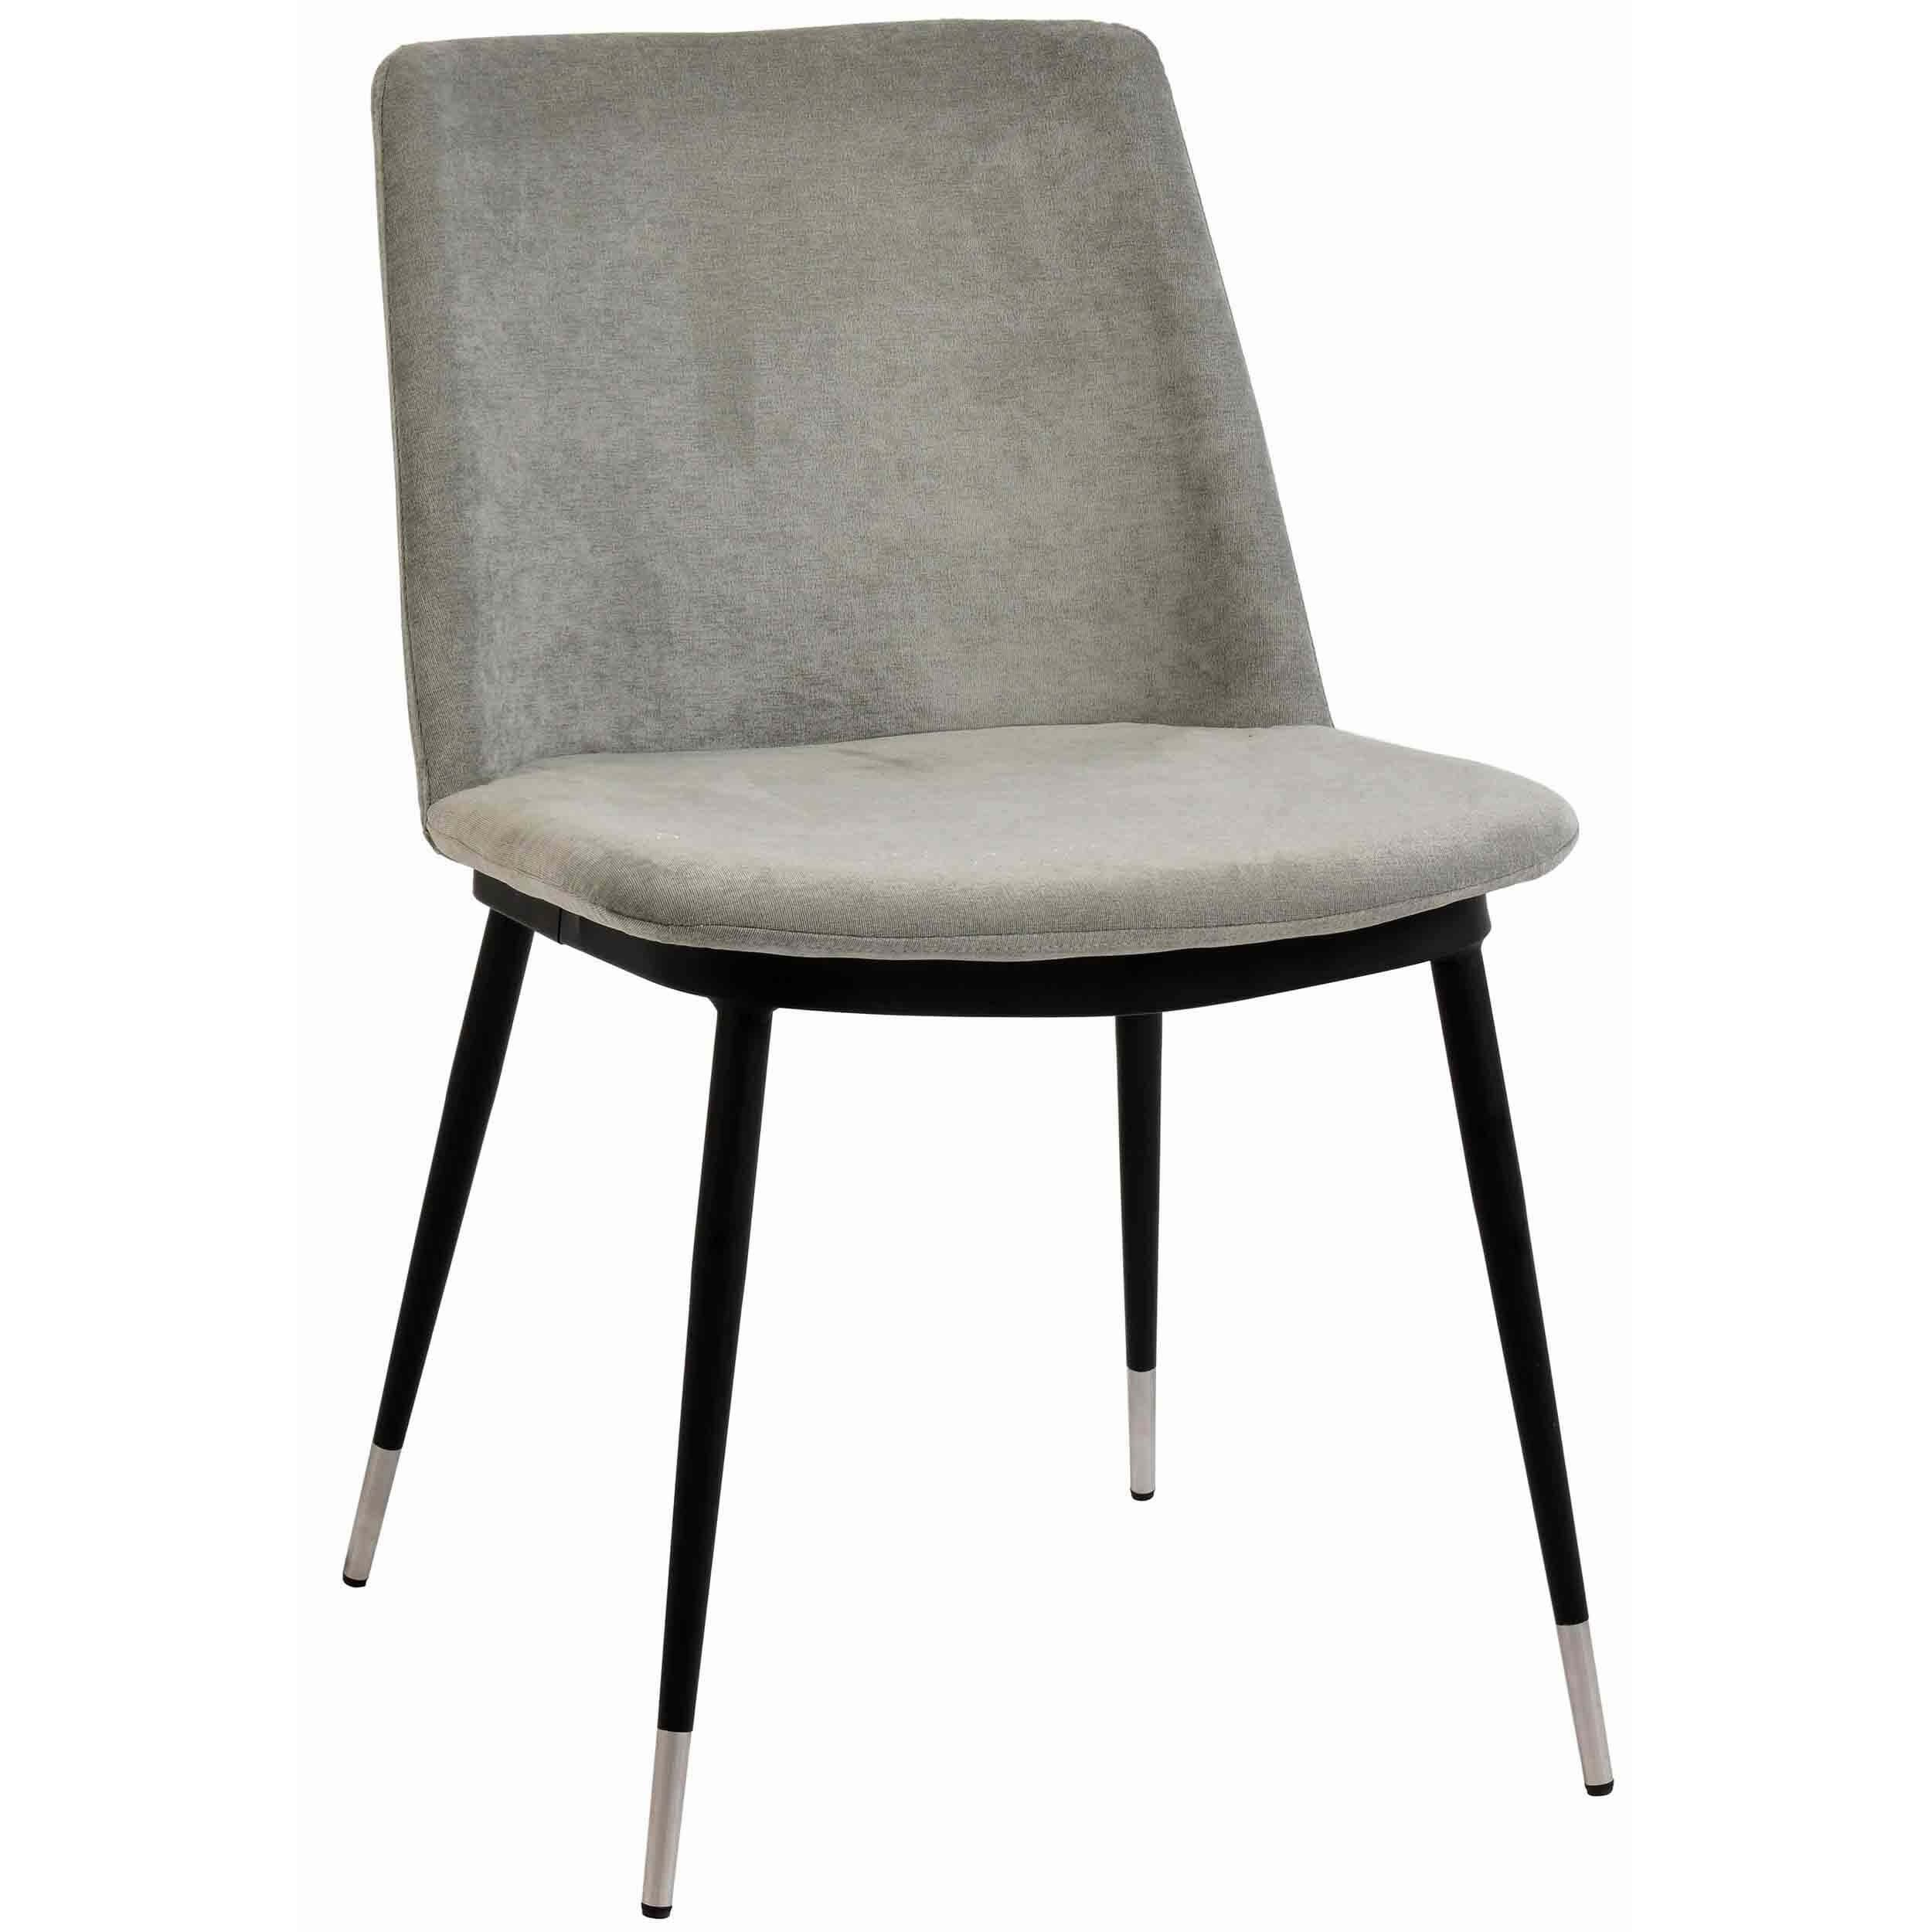 Evora Dining Chair Grey Set Of 2 Chairs Benches Dining